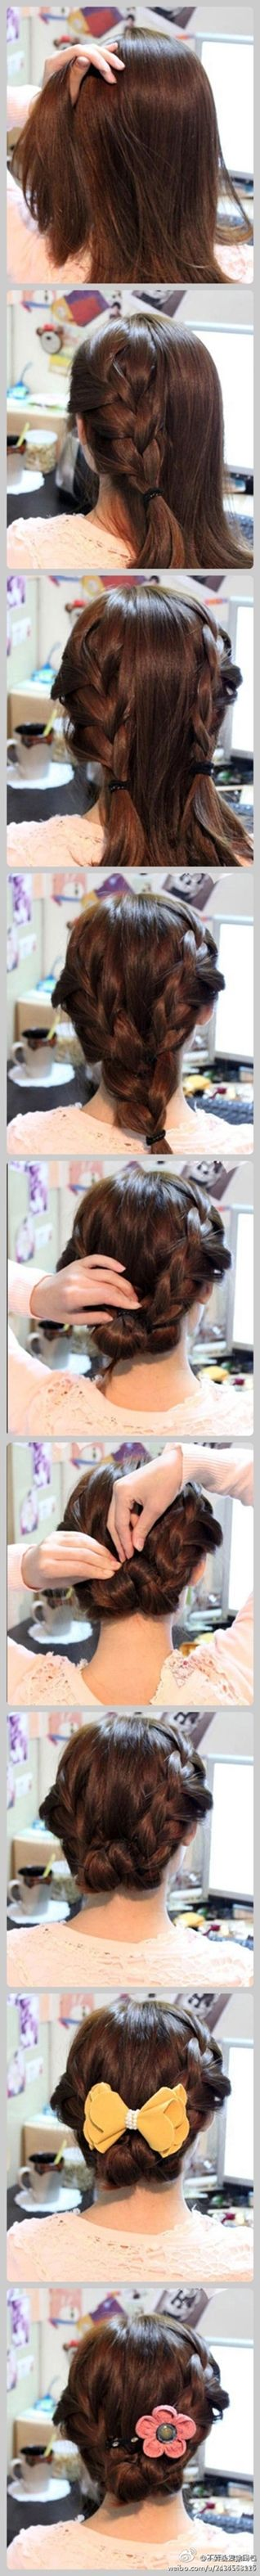 two braids updo